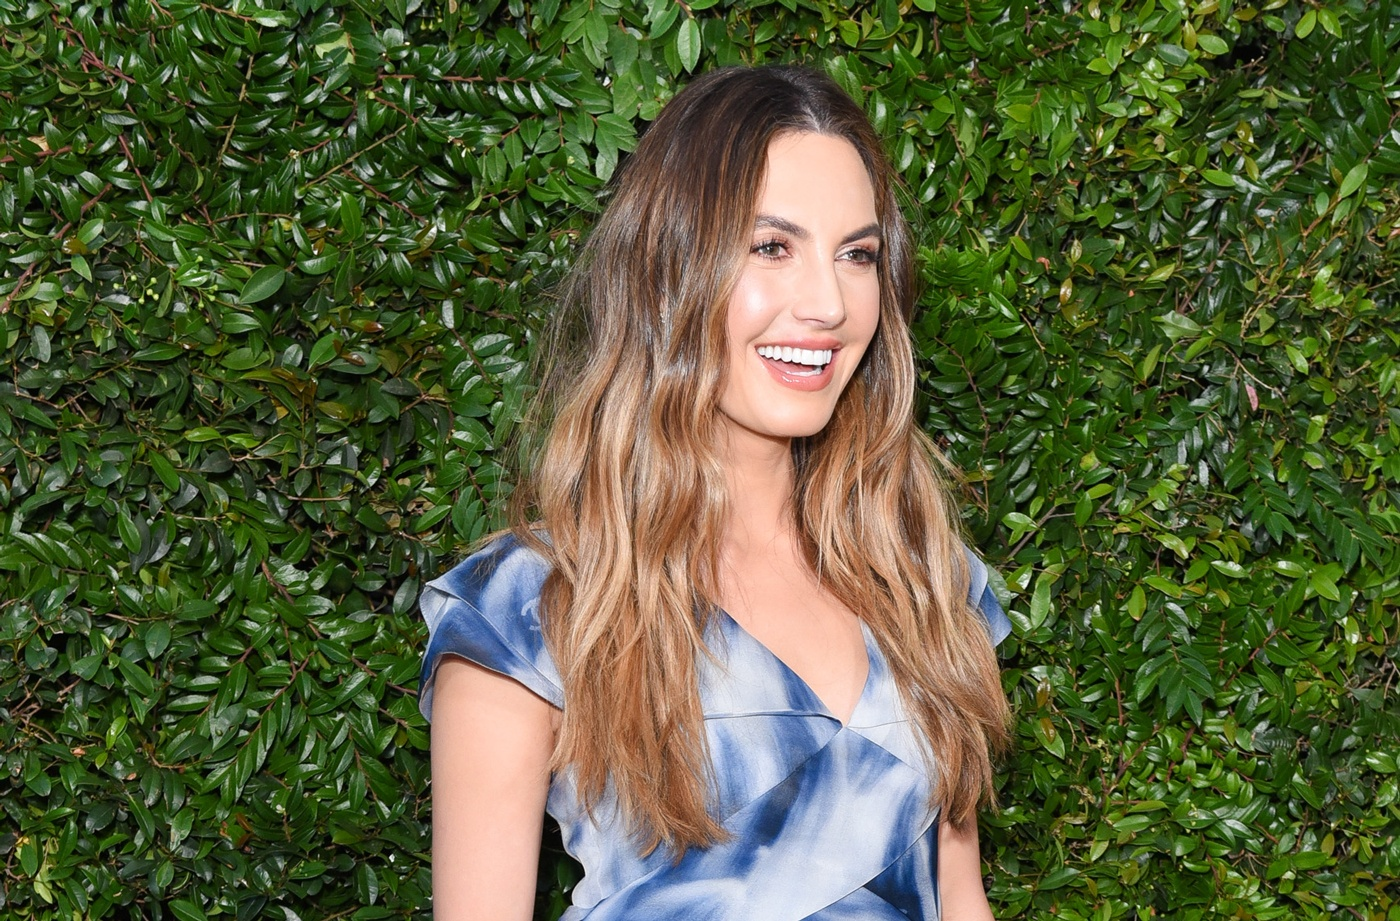 Thumbnail for Elizabeth Chambers Hammer credits an exfoliating, tropical fruit for her constant glow